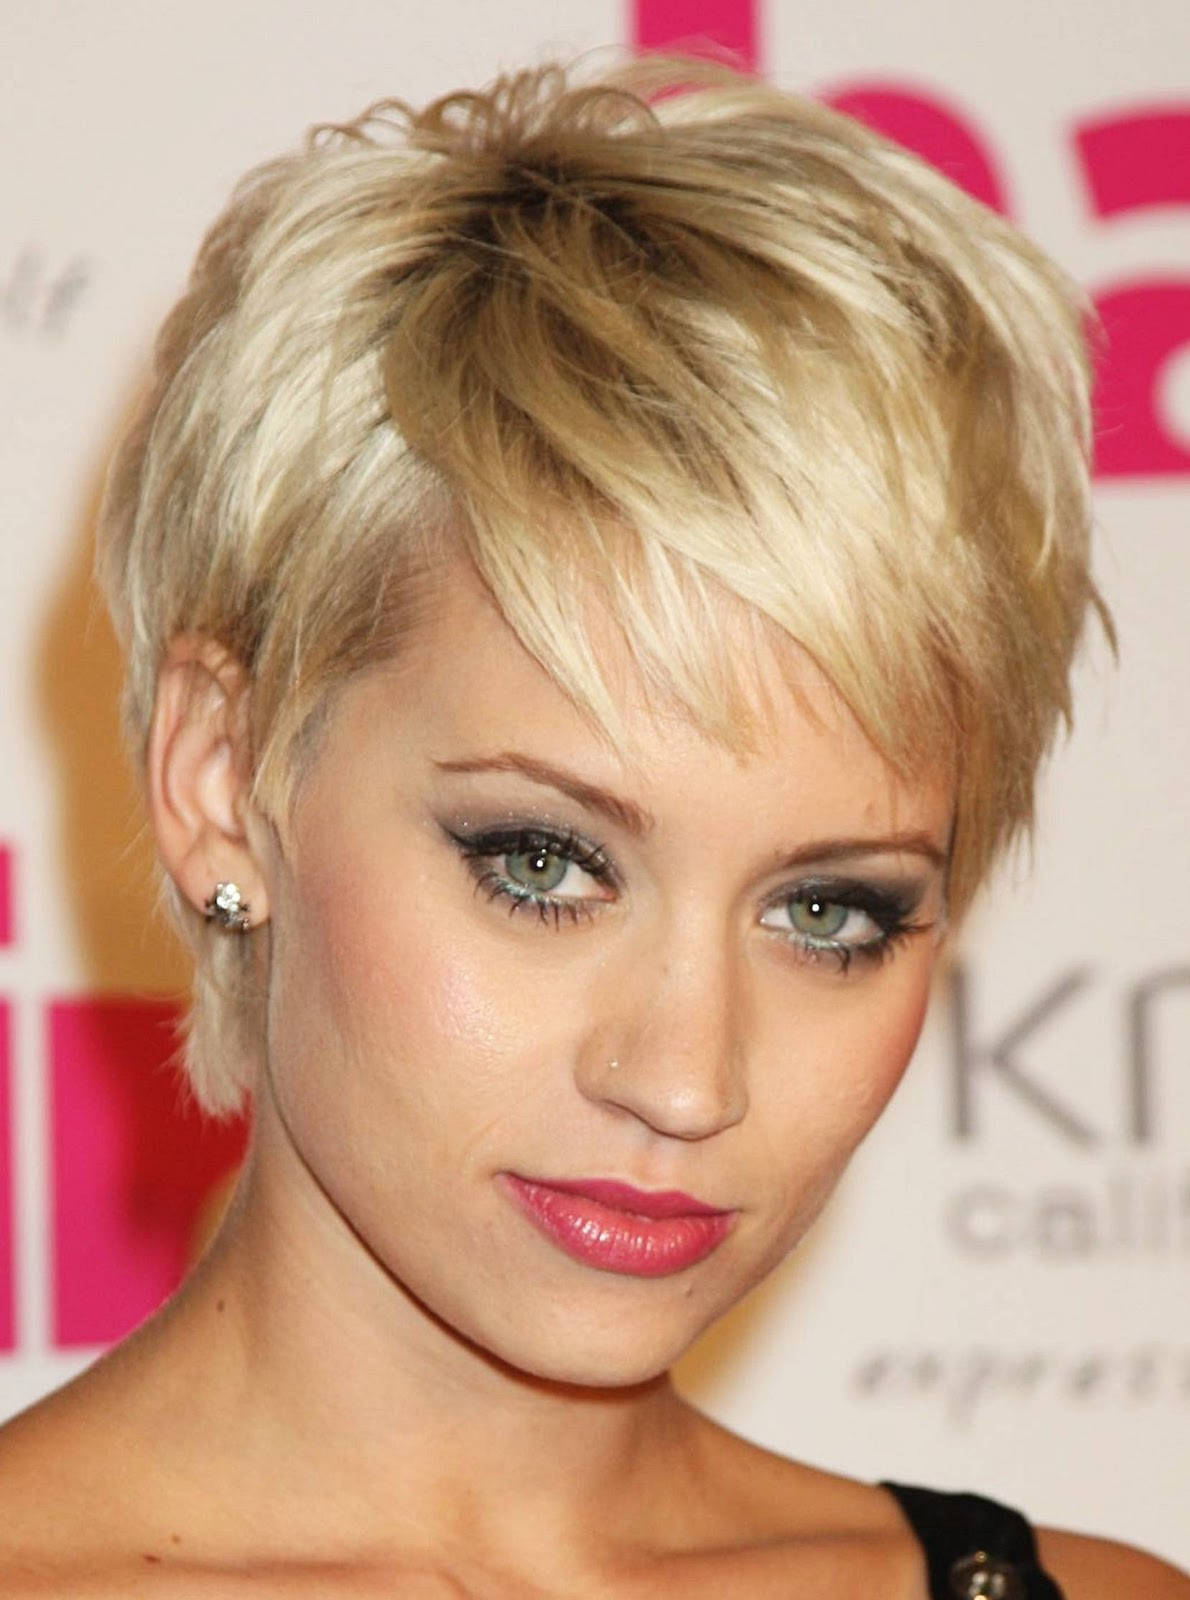 Hairstyles Female  30 Best Short Hairstyle For Women